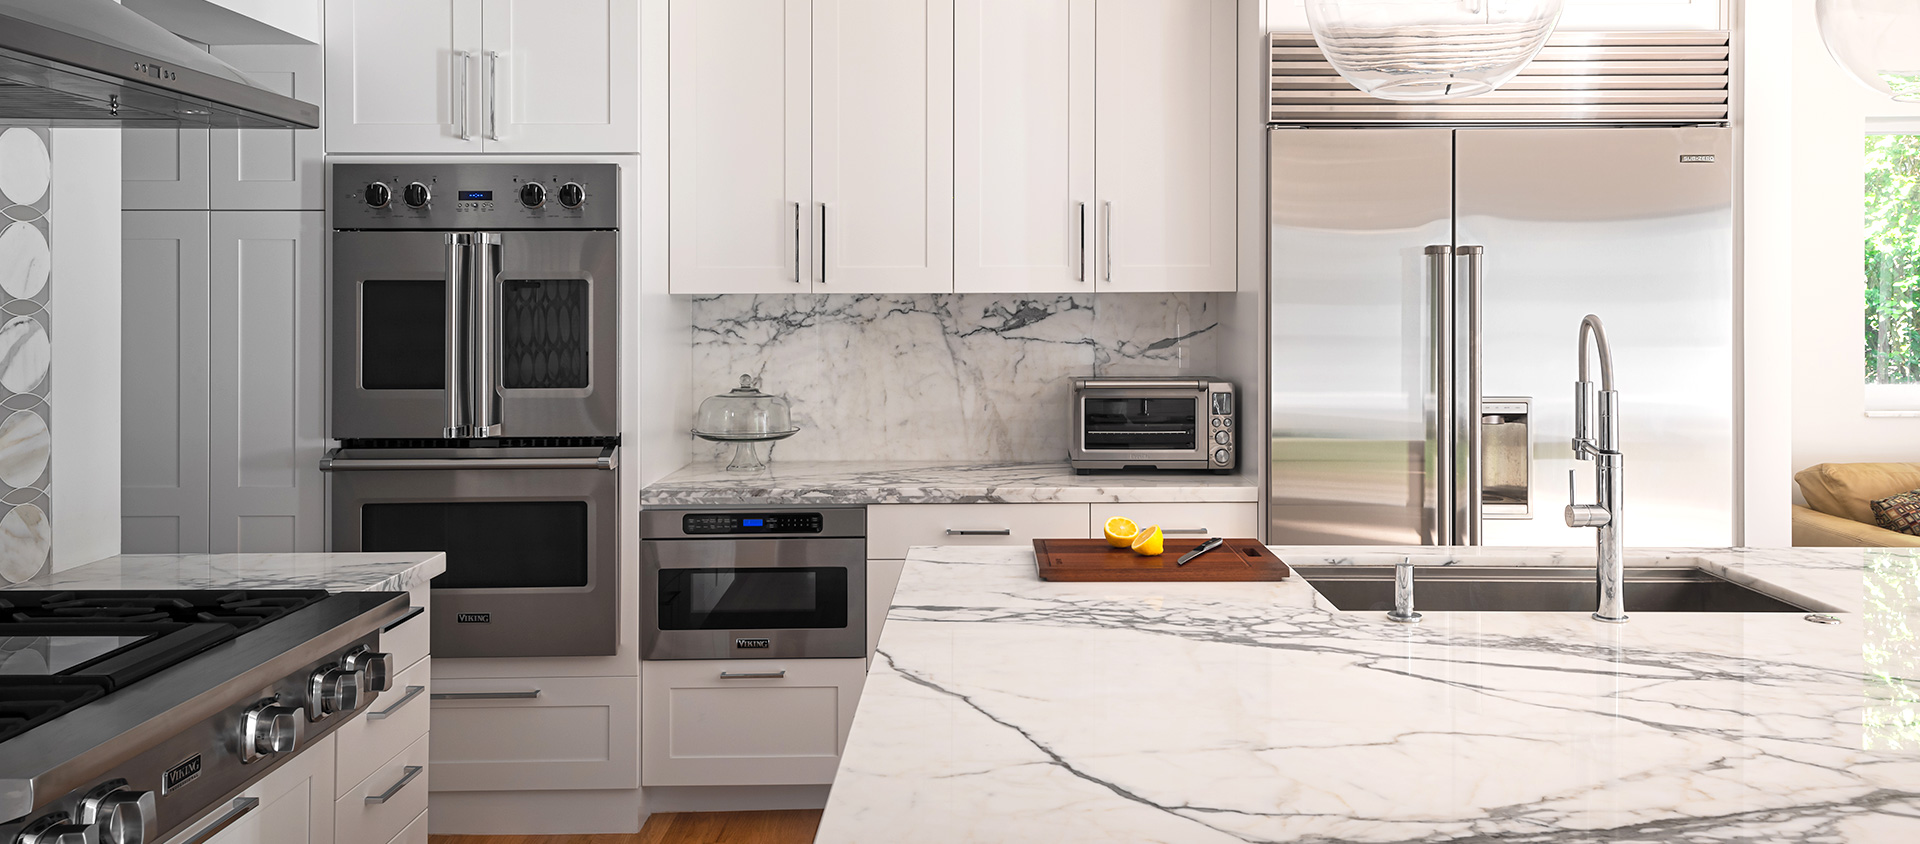 Kitchen Remodeling in Kendall, Miami Beach, Miami, Coral Gables, South Miami, and Key Largo